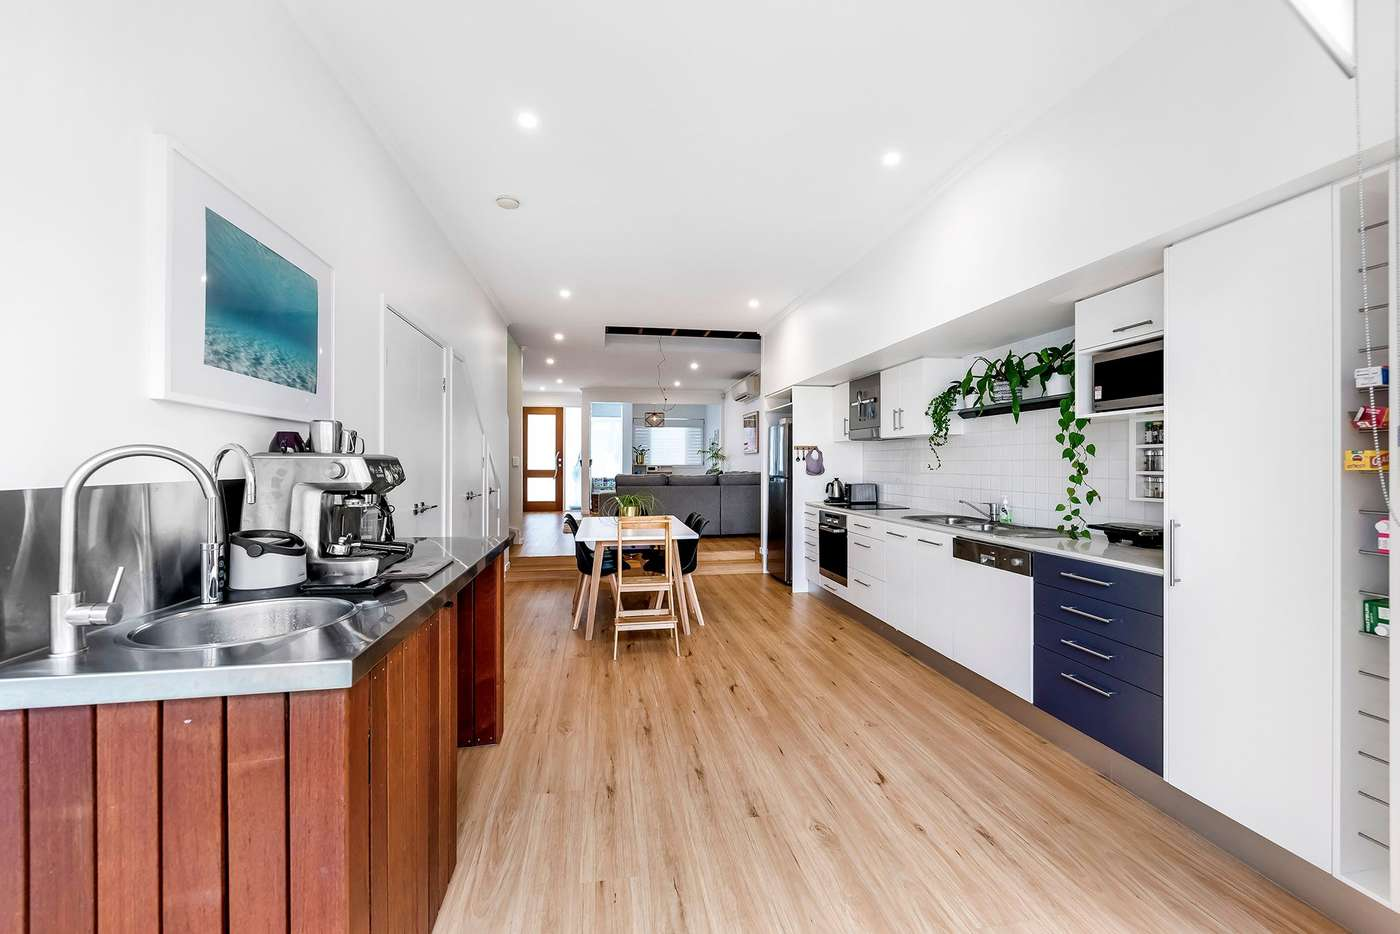 Main view of Homely townhouse listing, 16 Moores Crescent, Varsity Lakes QLD 4227